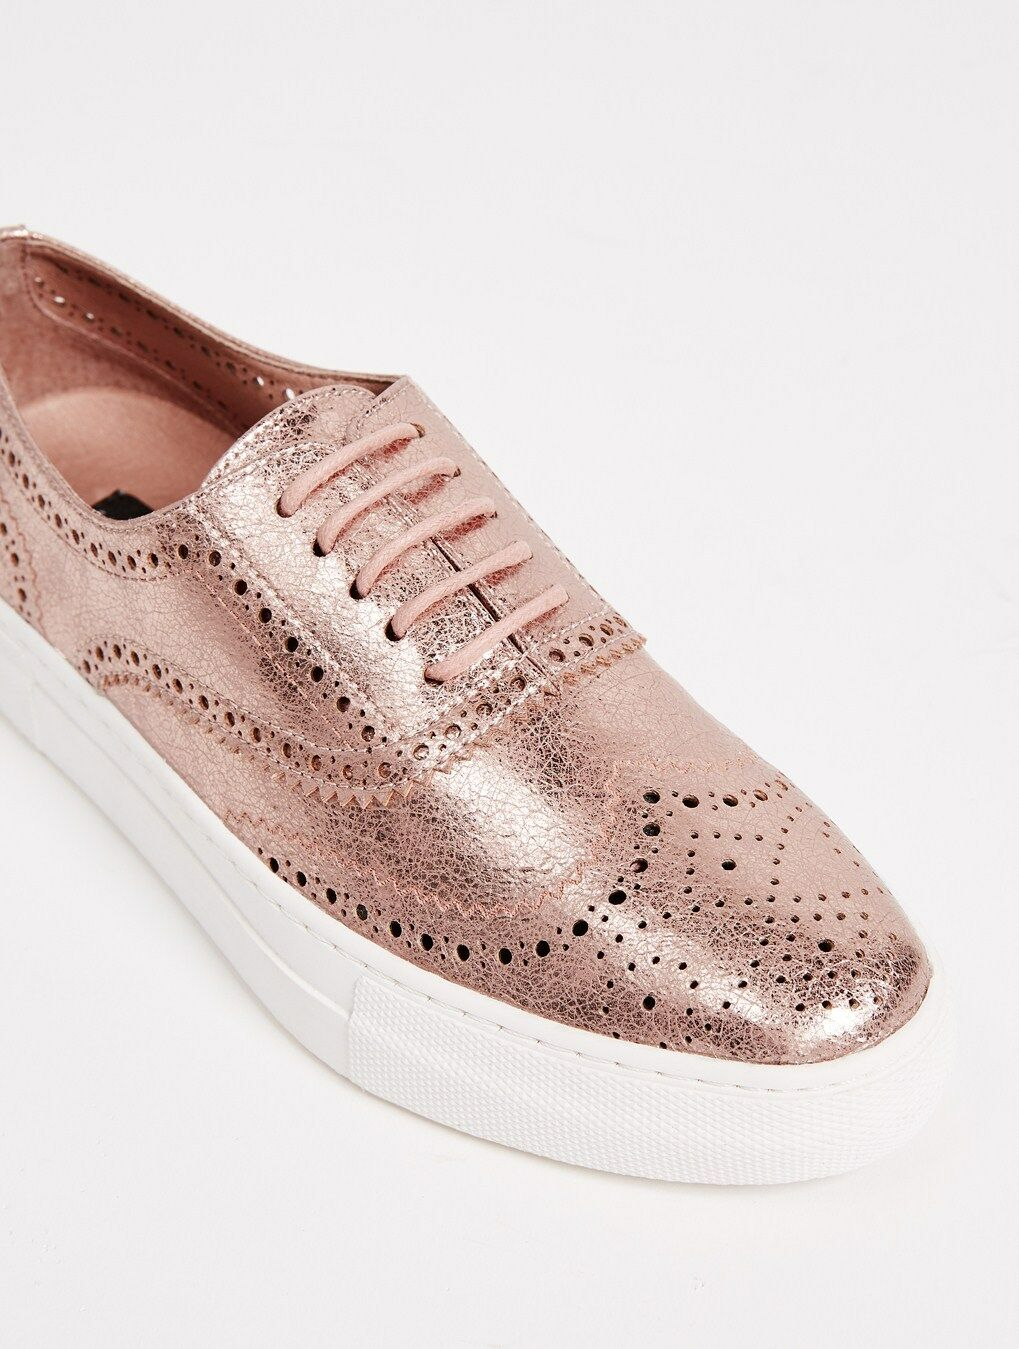 Steven by Oxford Steve Madden Allister Platform Oxford by Sneaker Schuhes Rose Gold Größe 9 b98b67